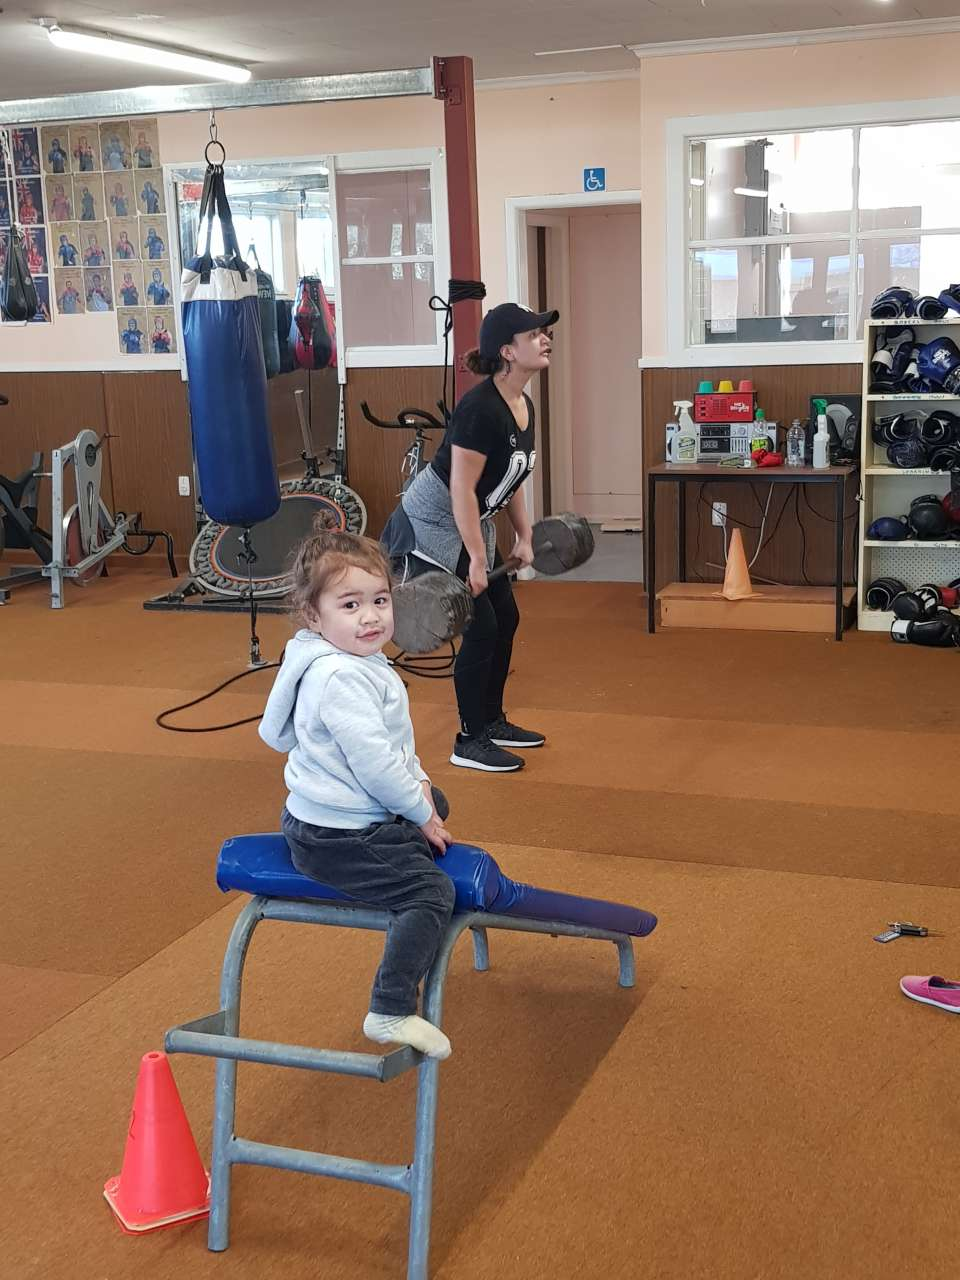 Kat completed #session3 with me doing an upper body workout. We are really trying to strengthen her shoulders, arms and core so these exercises will really help!